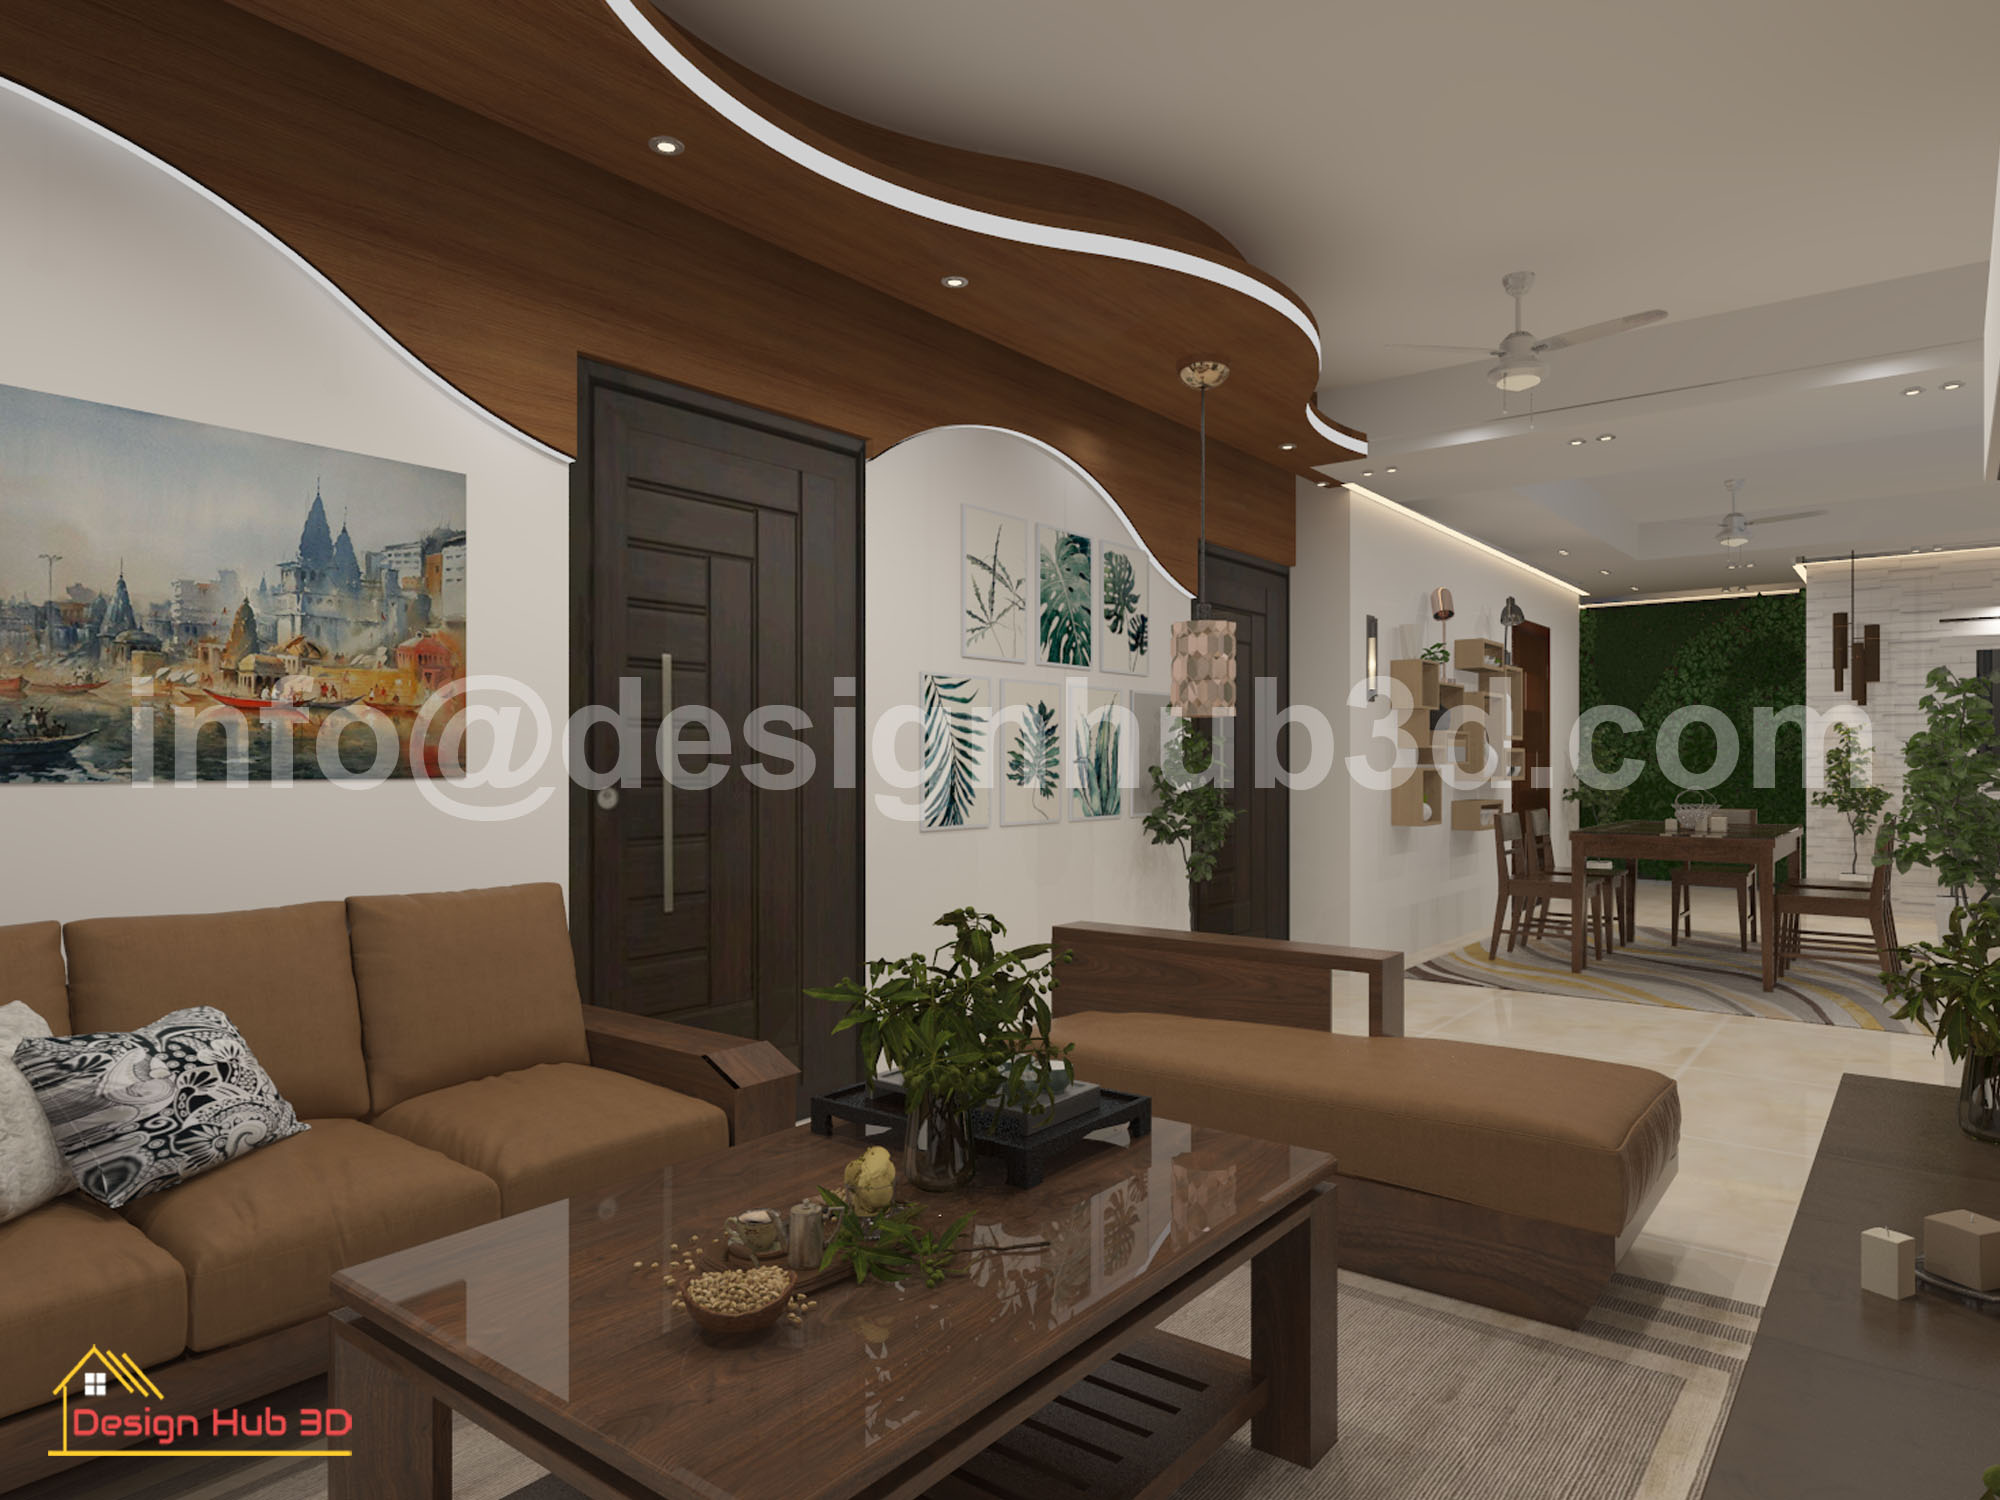 DesignHub 3D-Living Interior, Living Decor